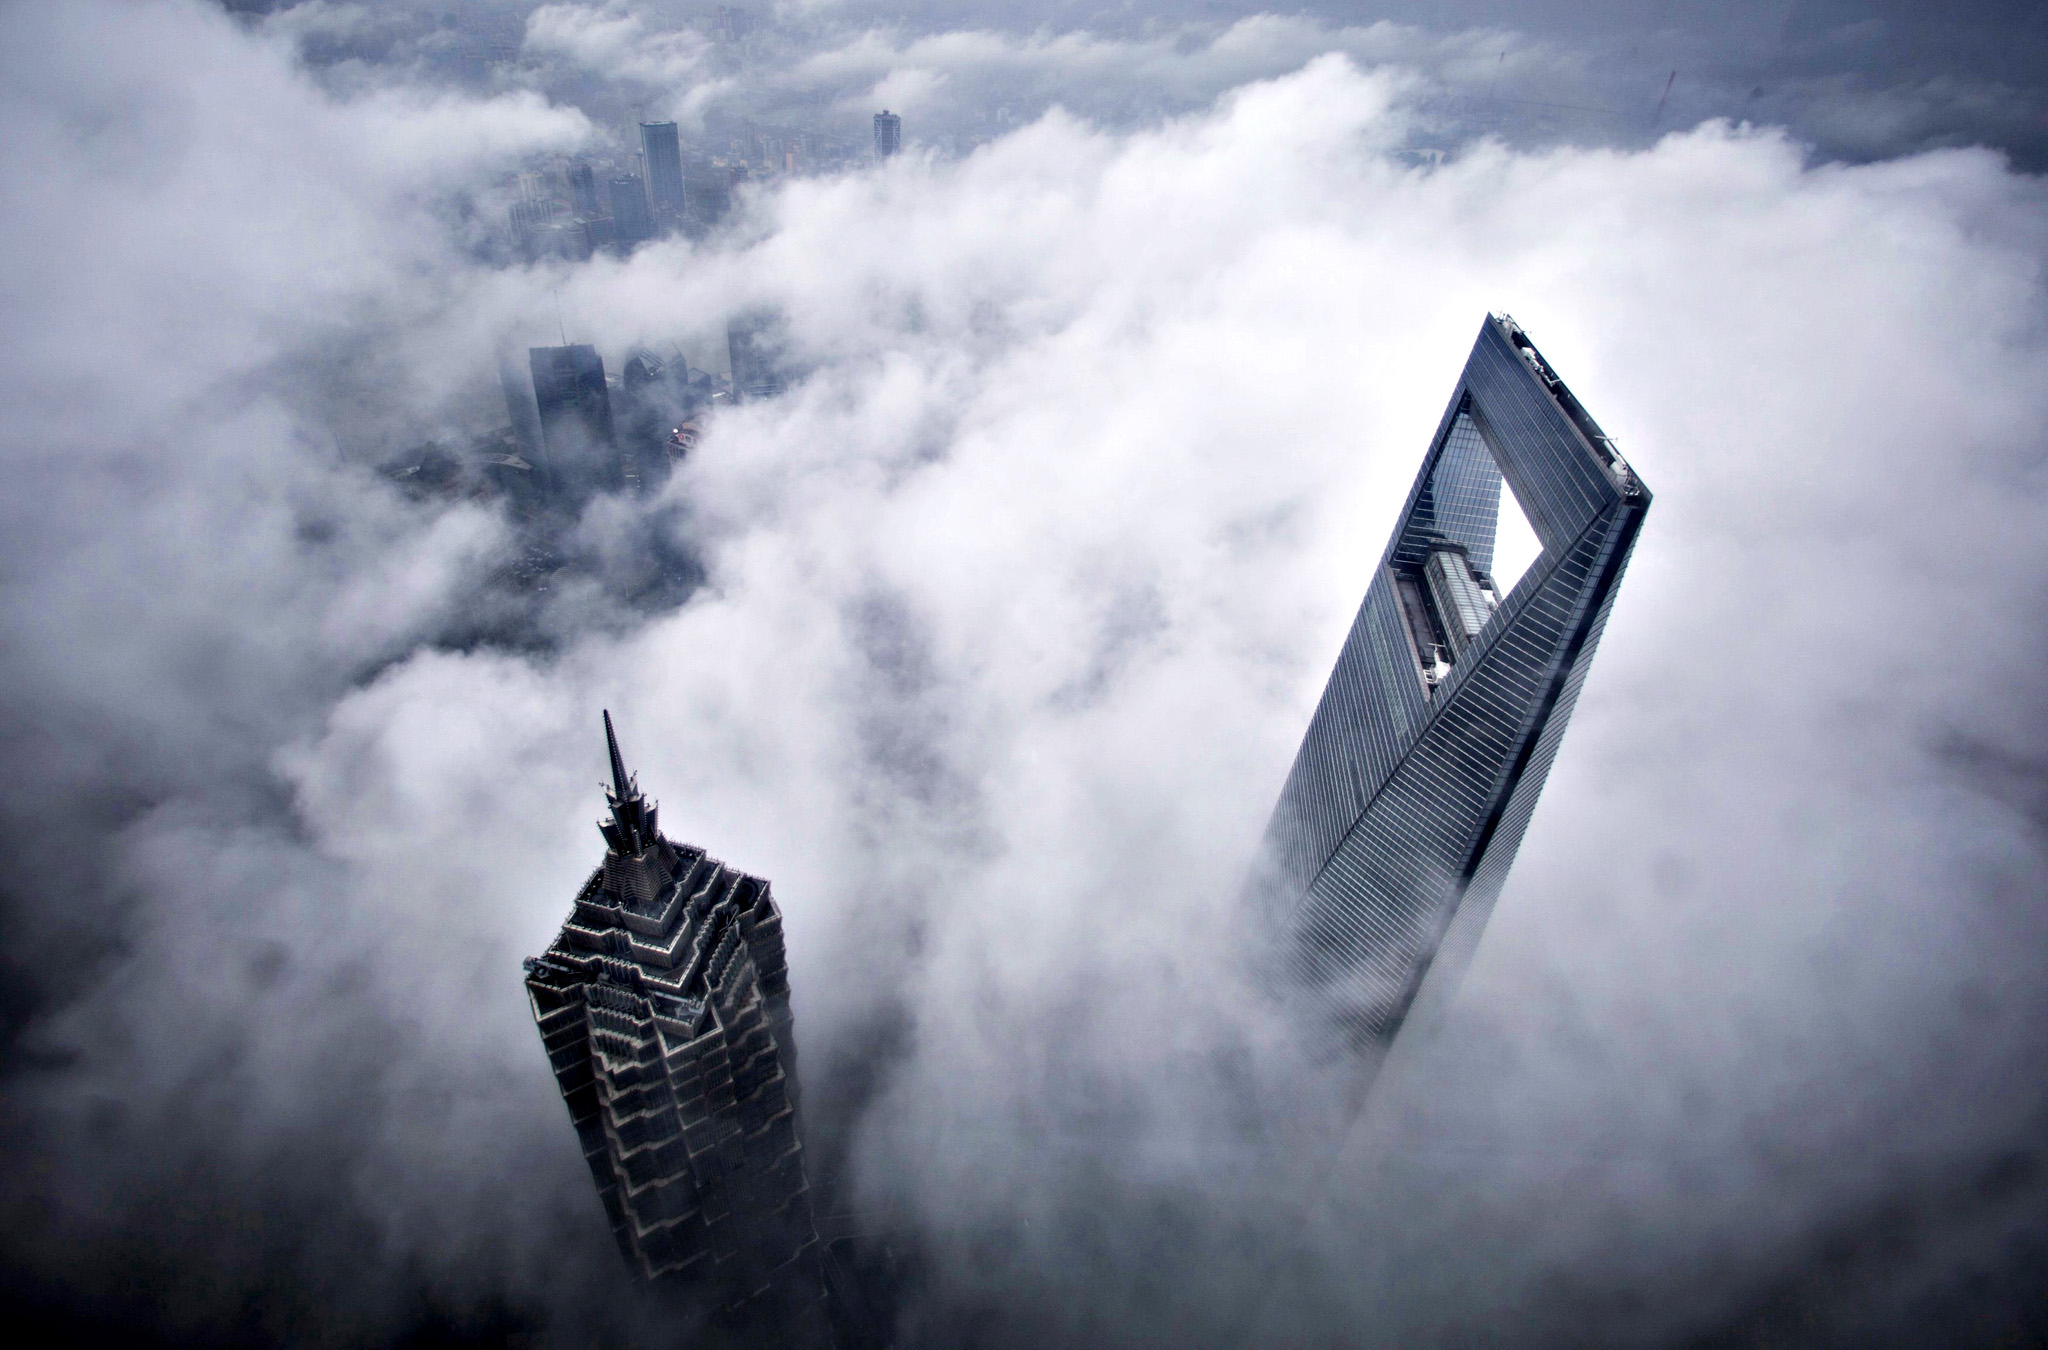 Skyscrapers Shanghai World Financial Center and Jin Mao Tower are seen during heavy rain at the financial district of Pudong in Shanghai on Friday